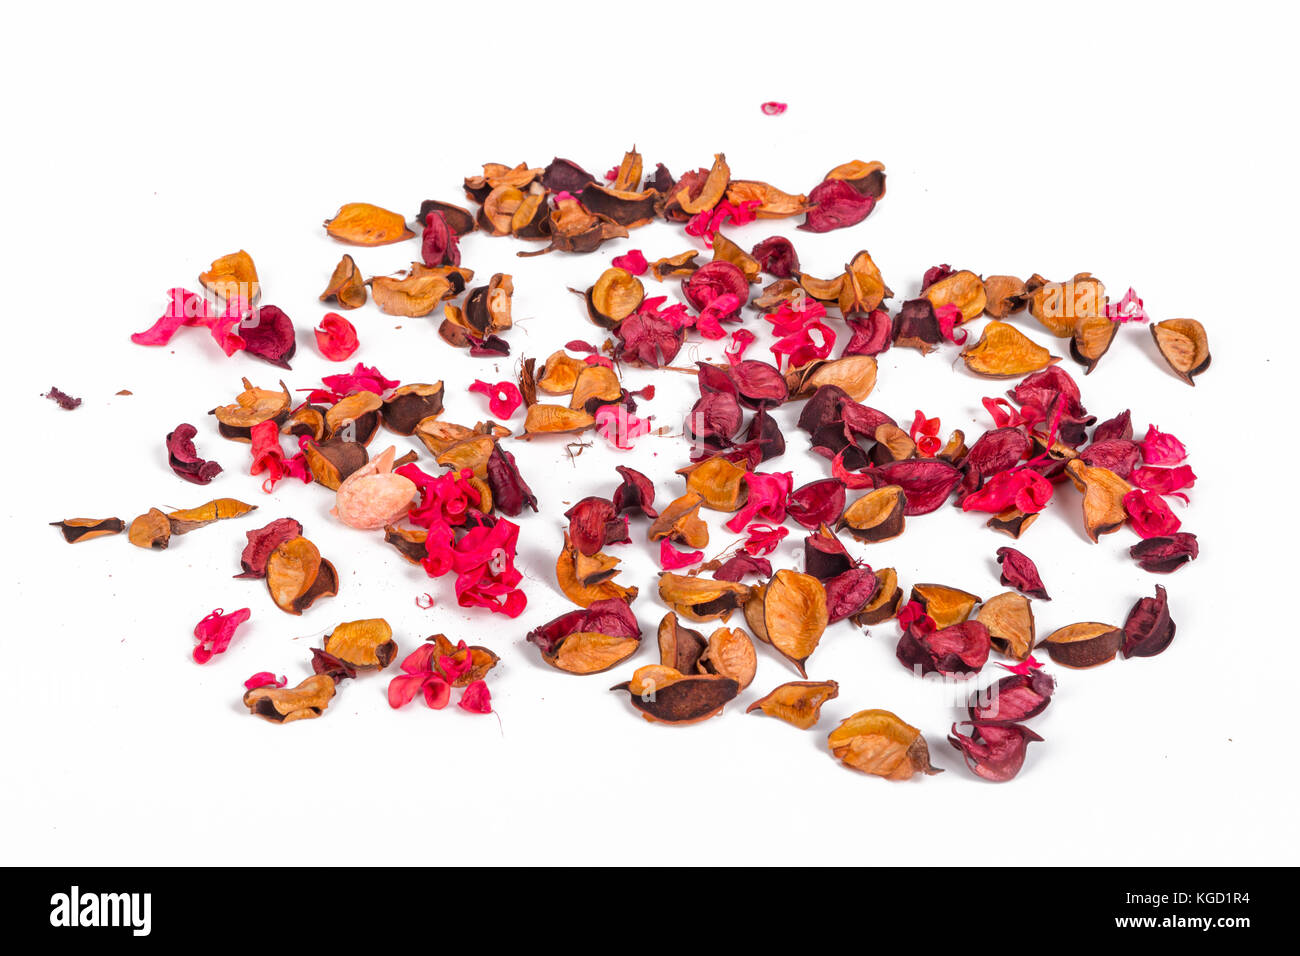 Close up detailed view of dried flowers and leaves around with romantic concept, isolated on white background. - Stock Image